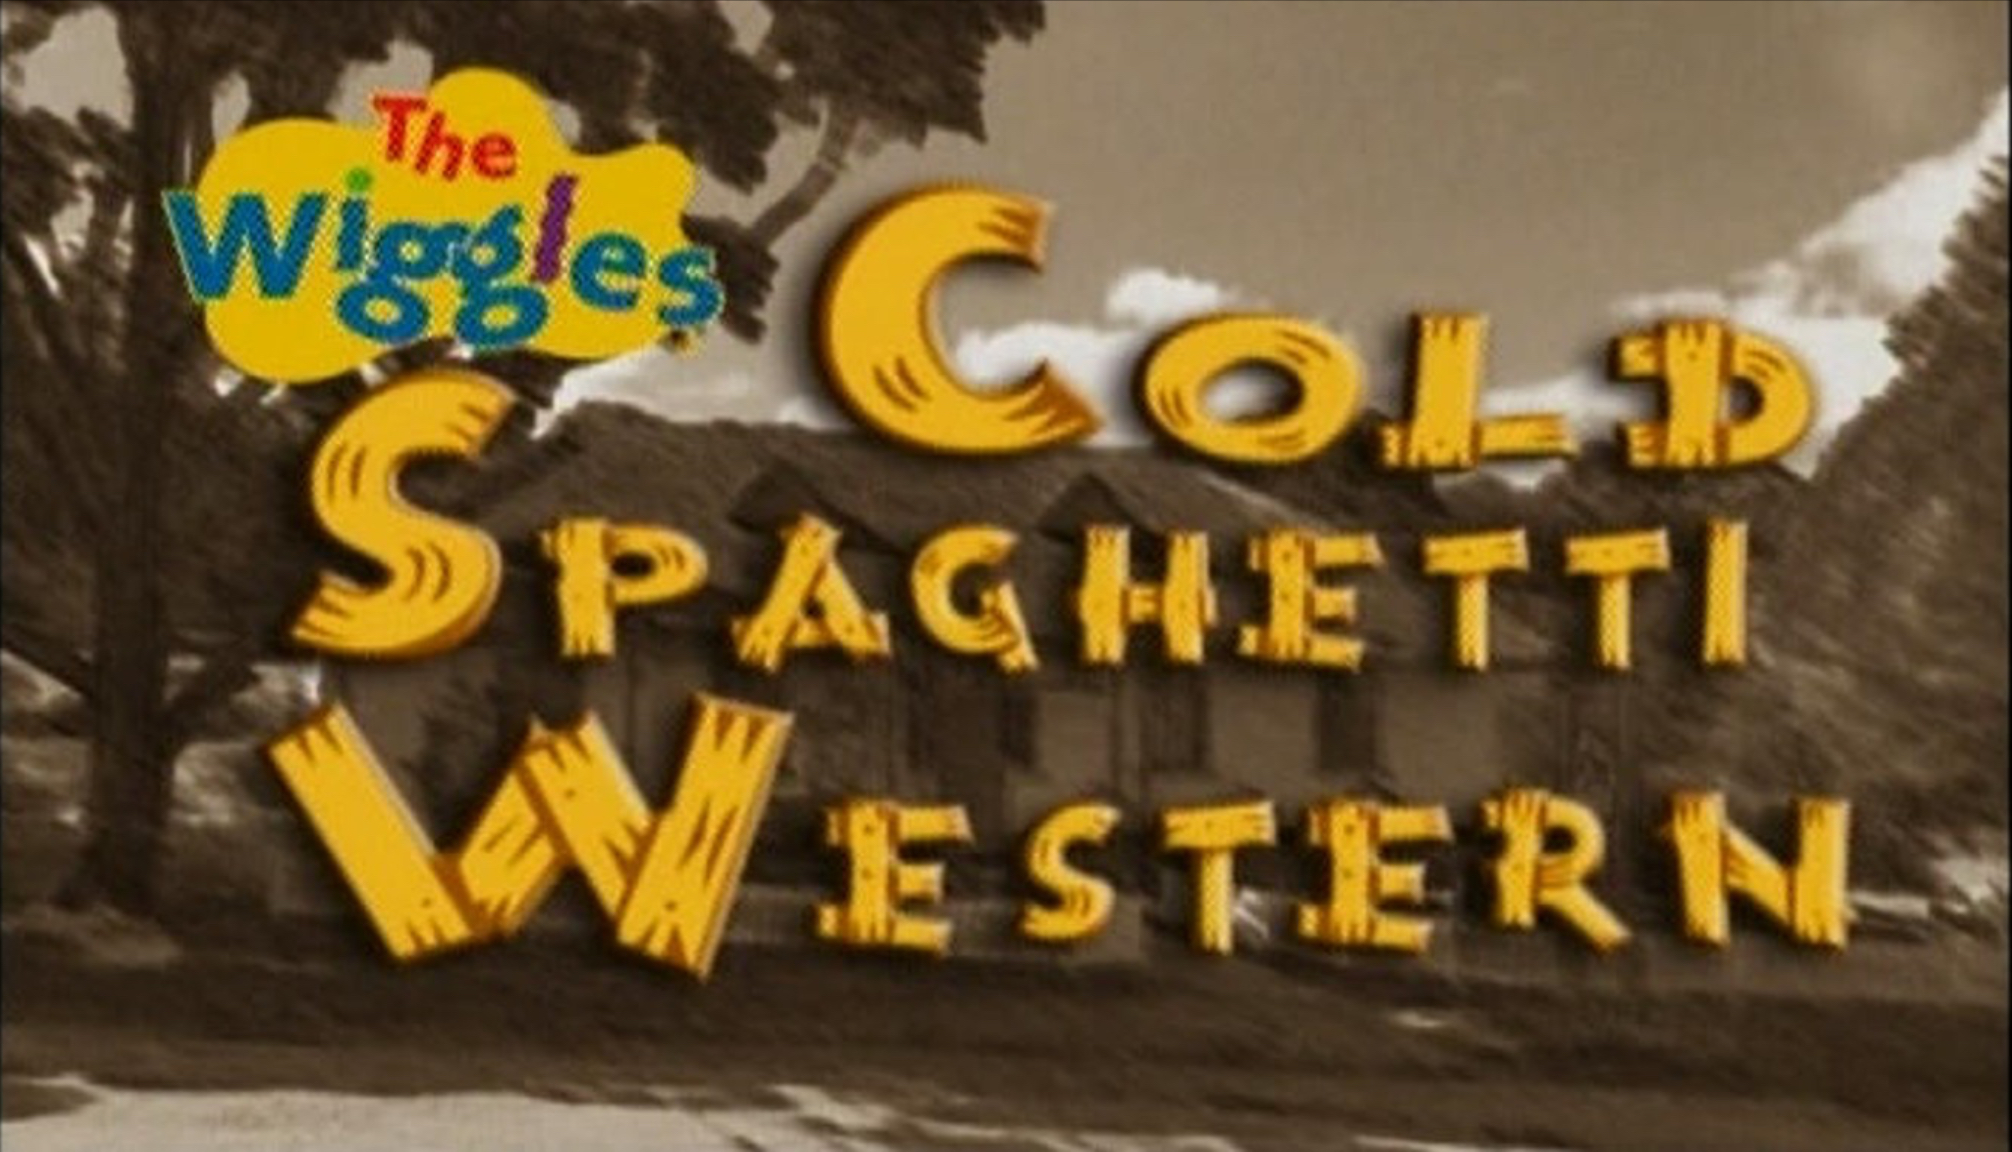 Cold Spaghetti Western (video)/Transcript